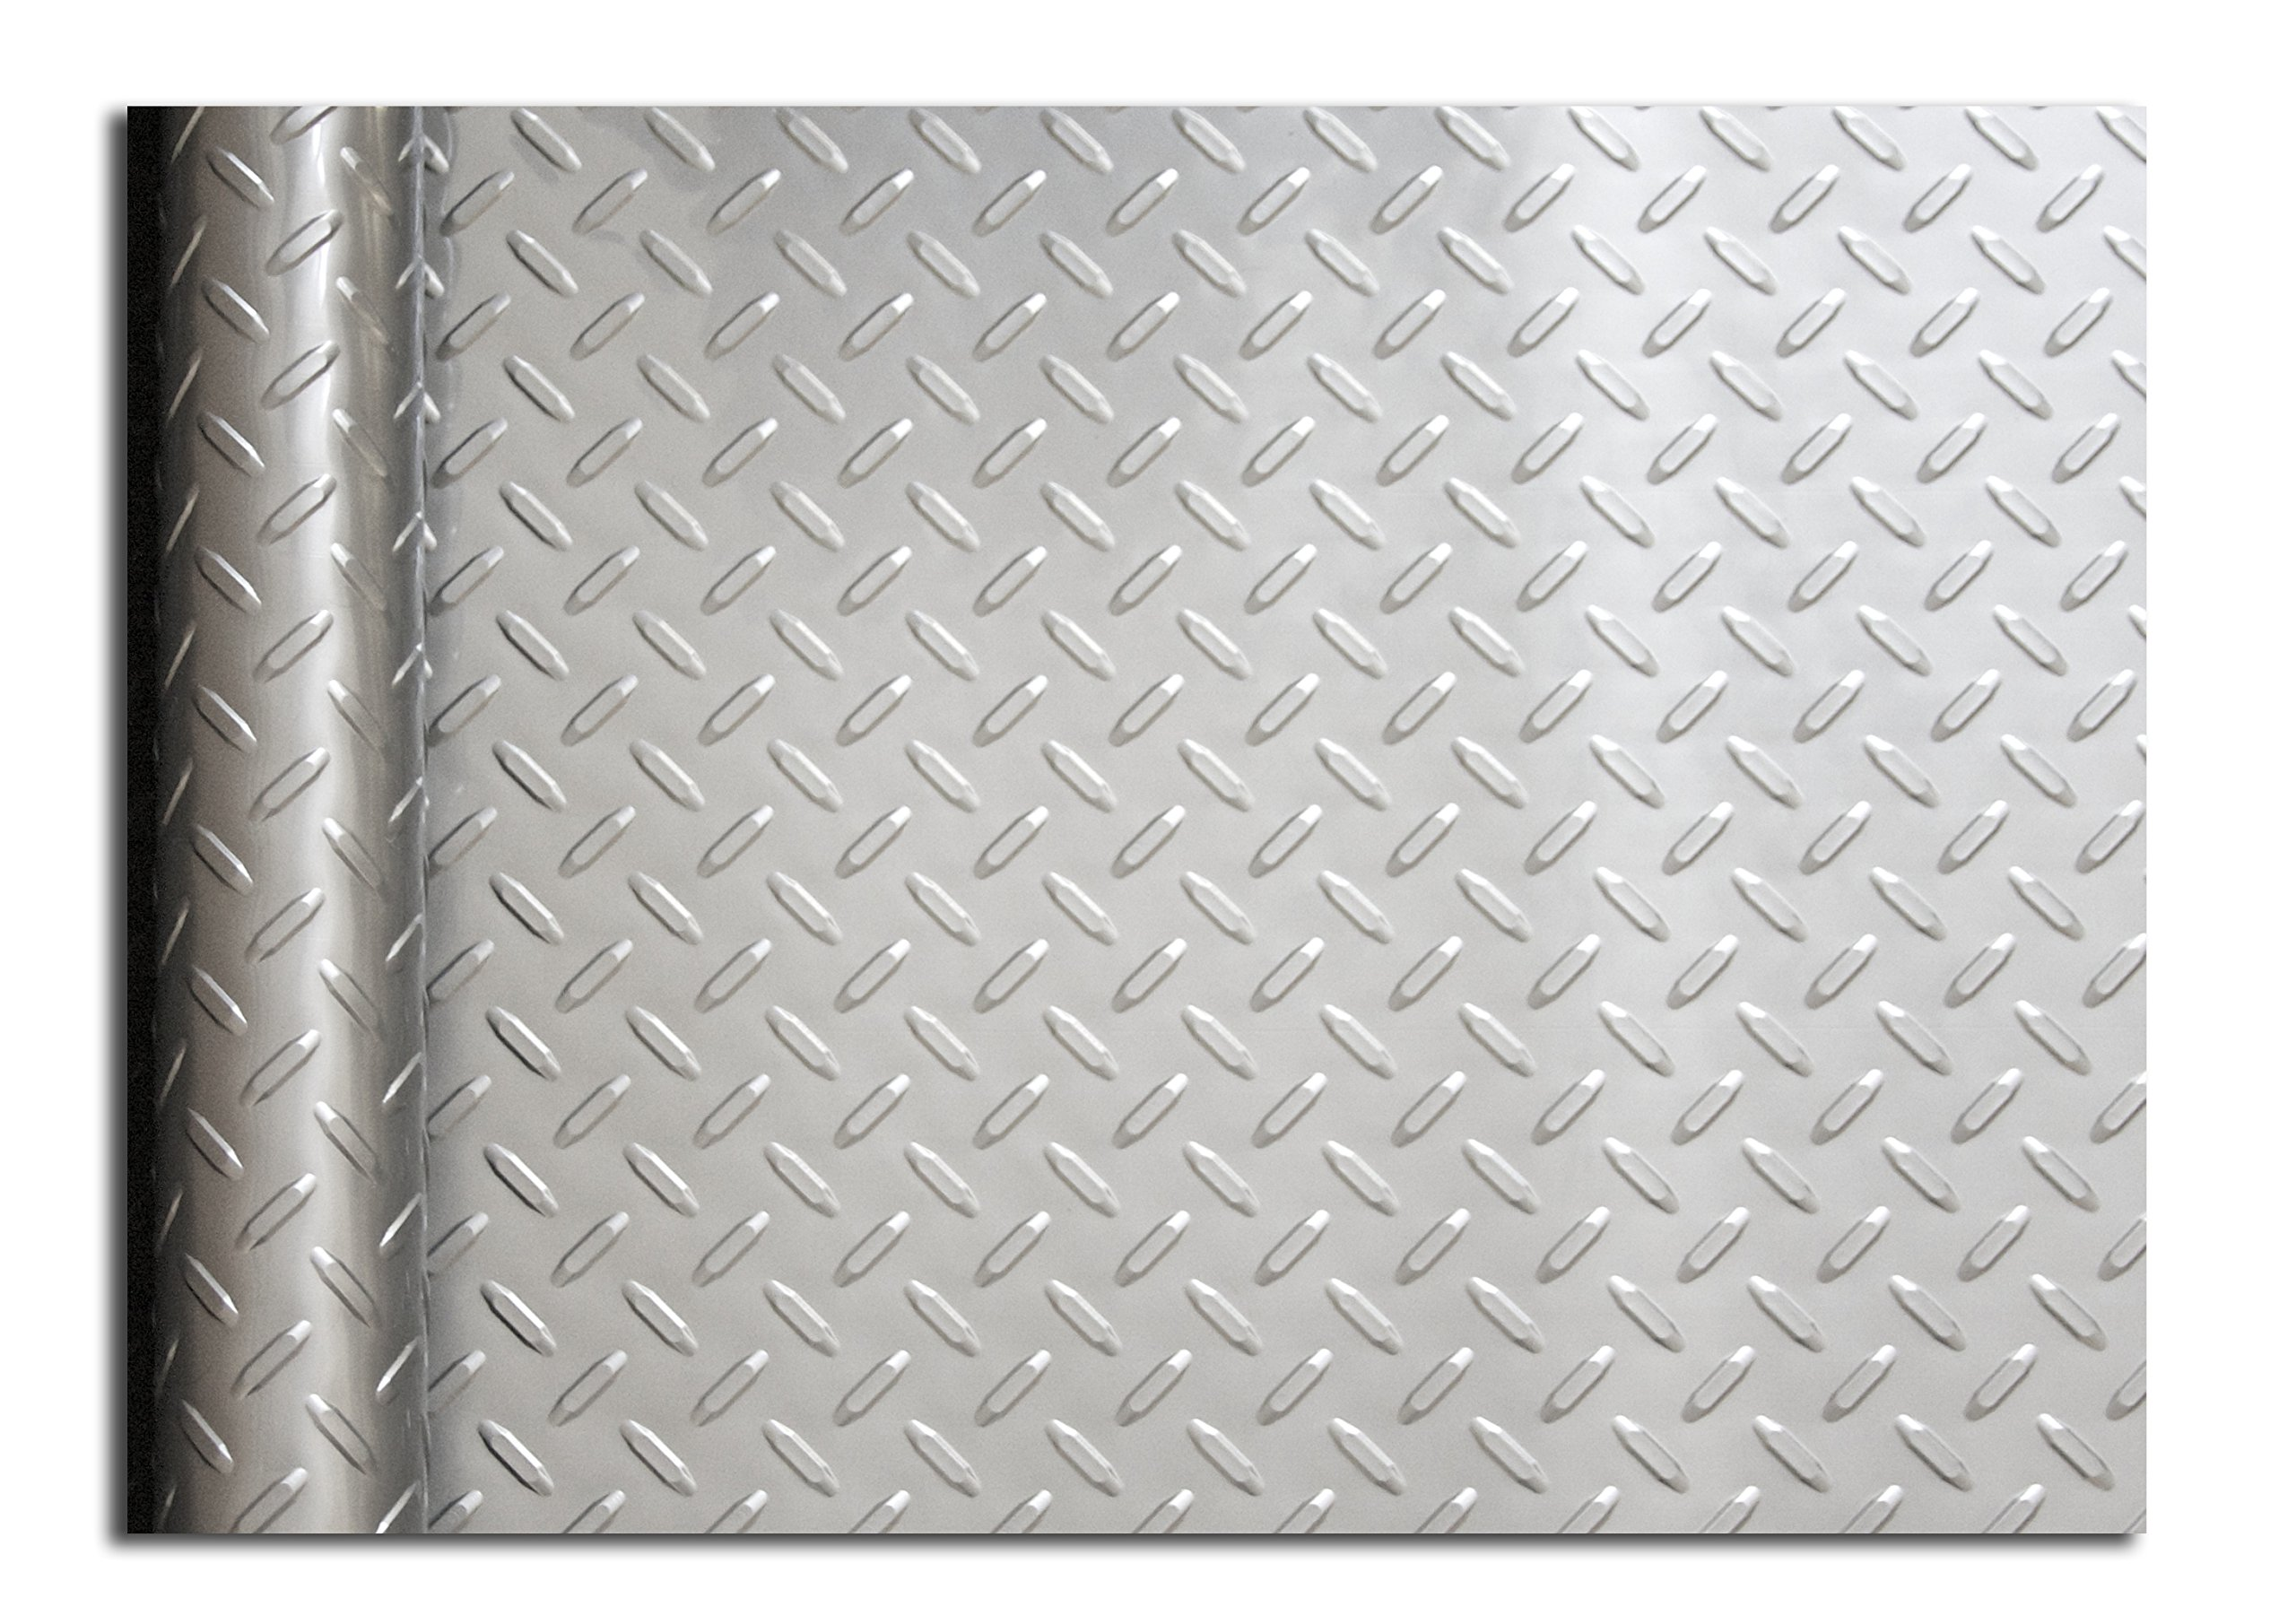 Resilia - Silver Garage Floor Runner/Protector - Embossed Diamond Plate Pattern, 48 inches Wide (4' x 10') by Resilia (Image #2)